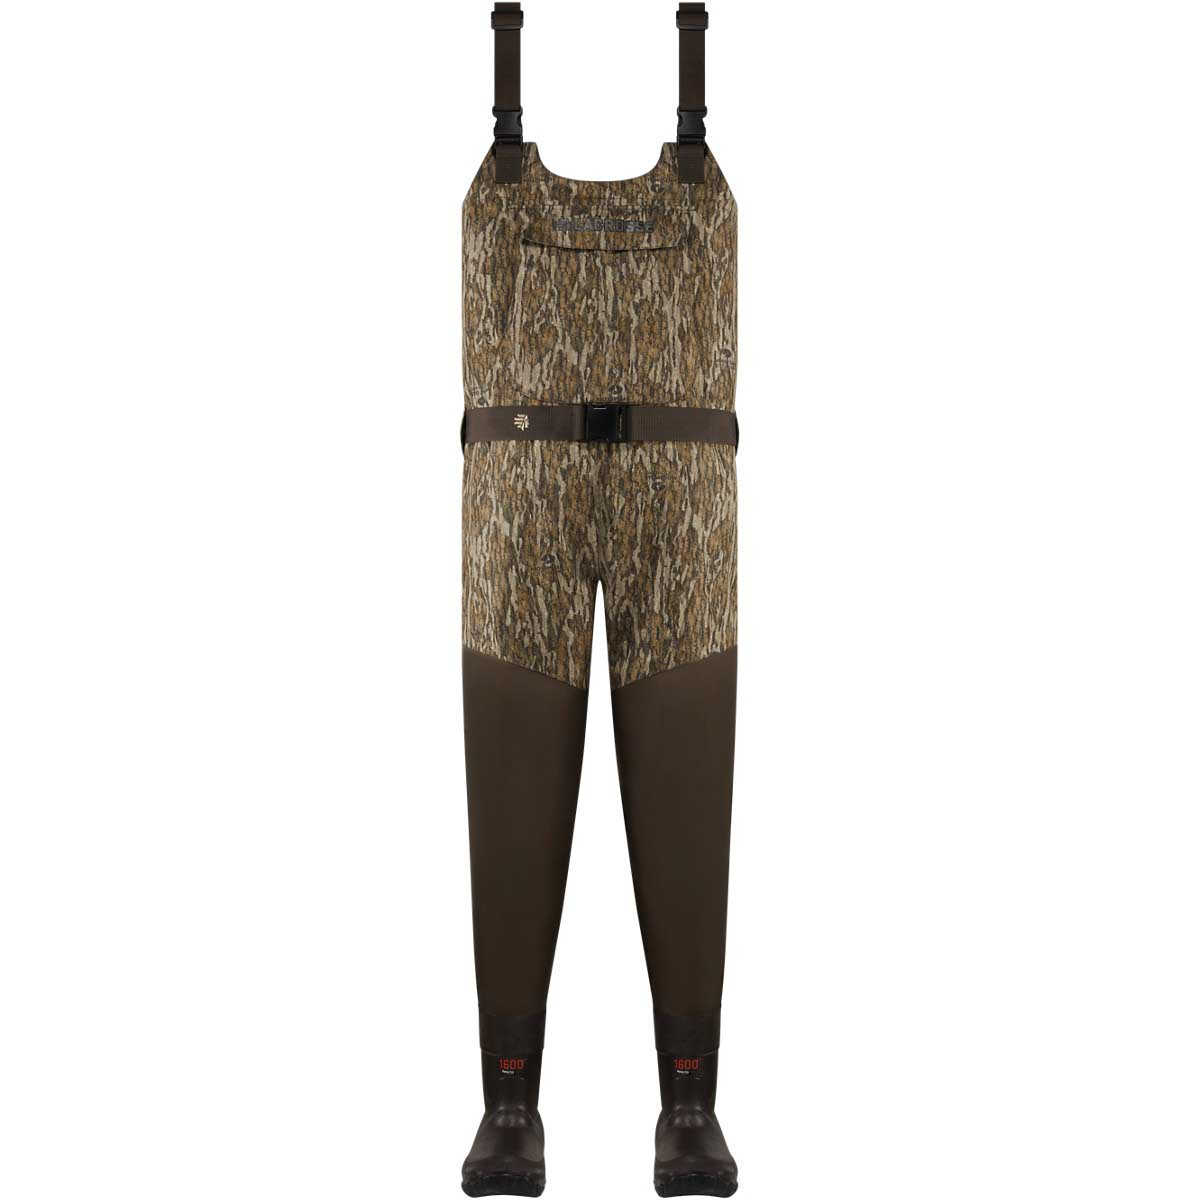 LaCrosse Wetlands Waders 1600G, Bottomland - Stout Sizes_1.jpg